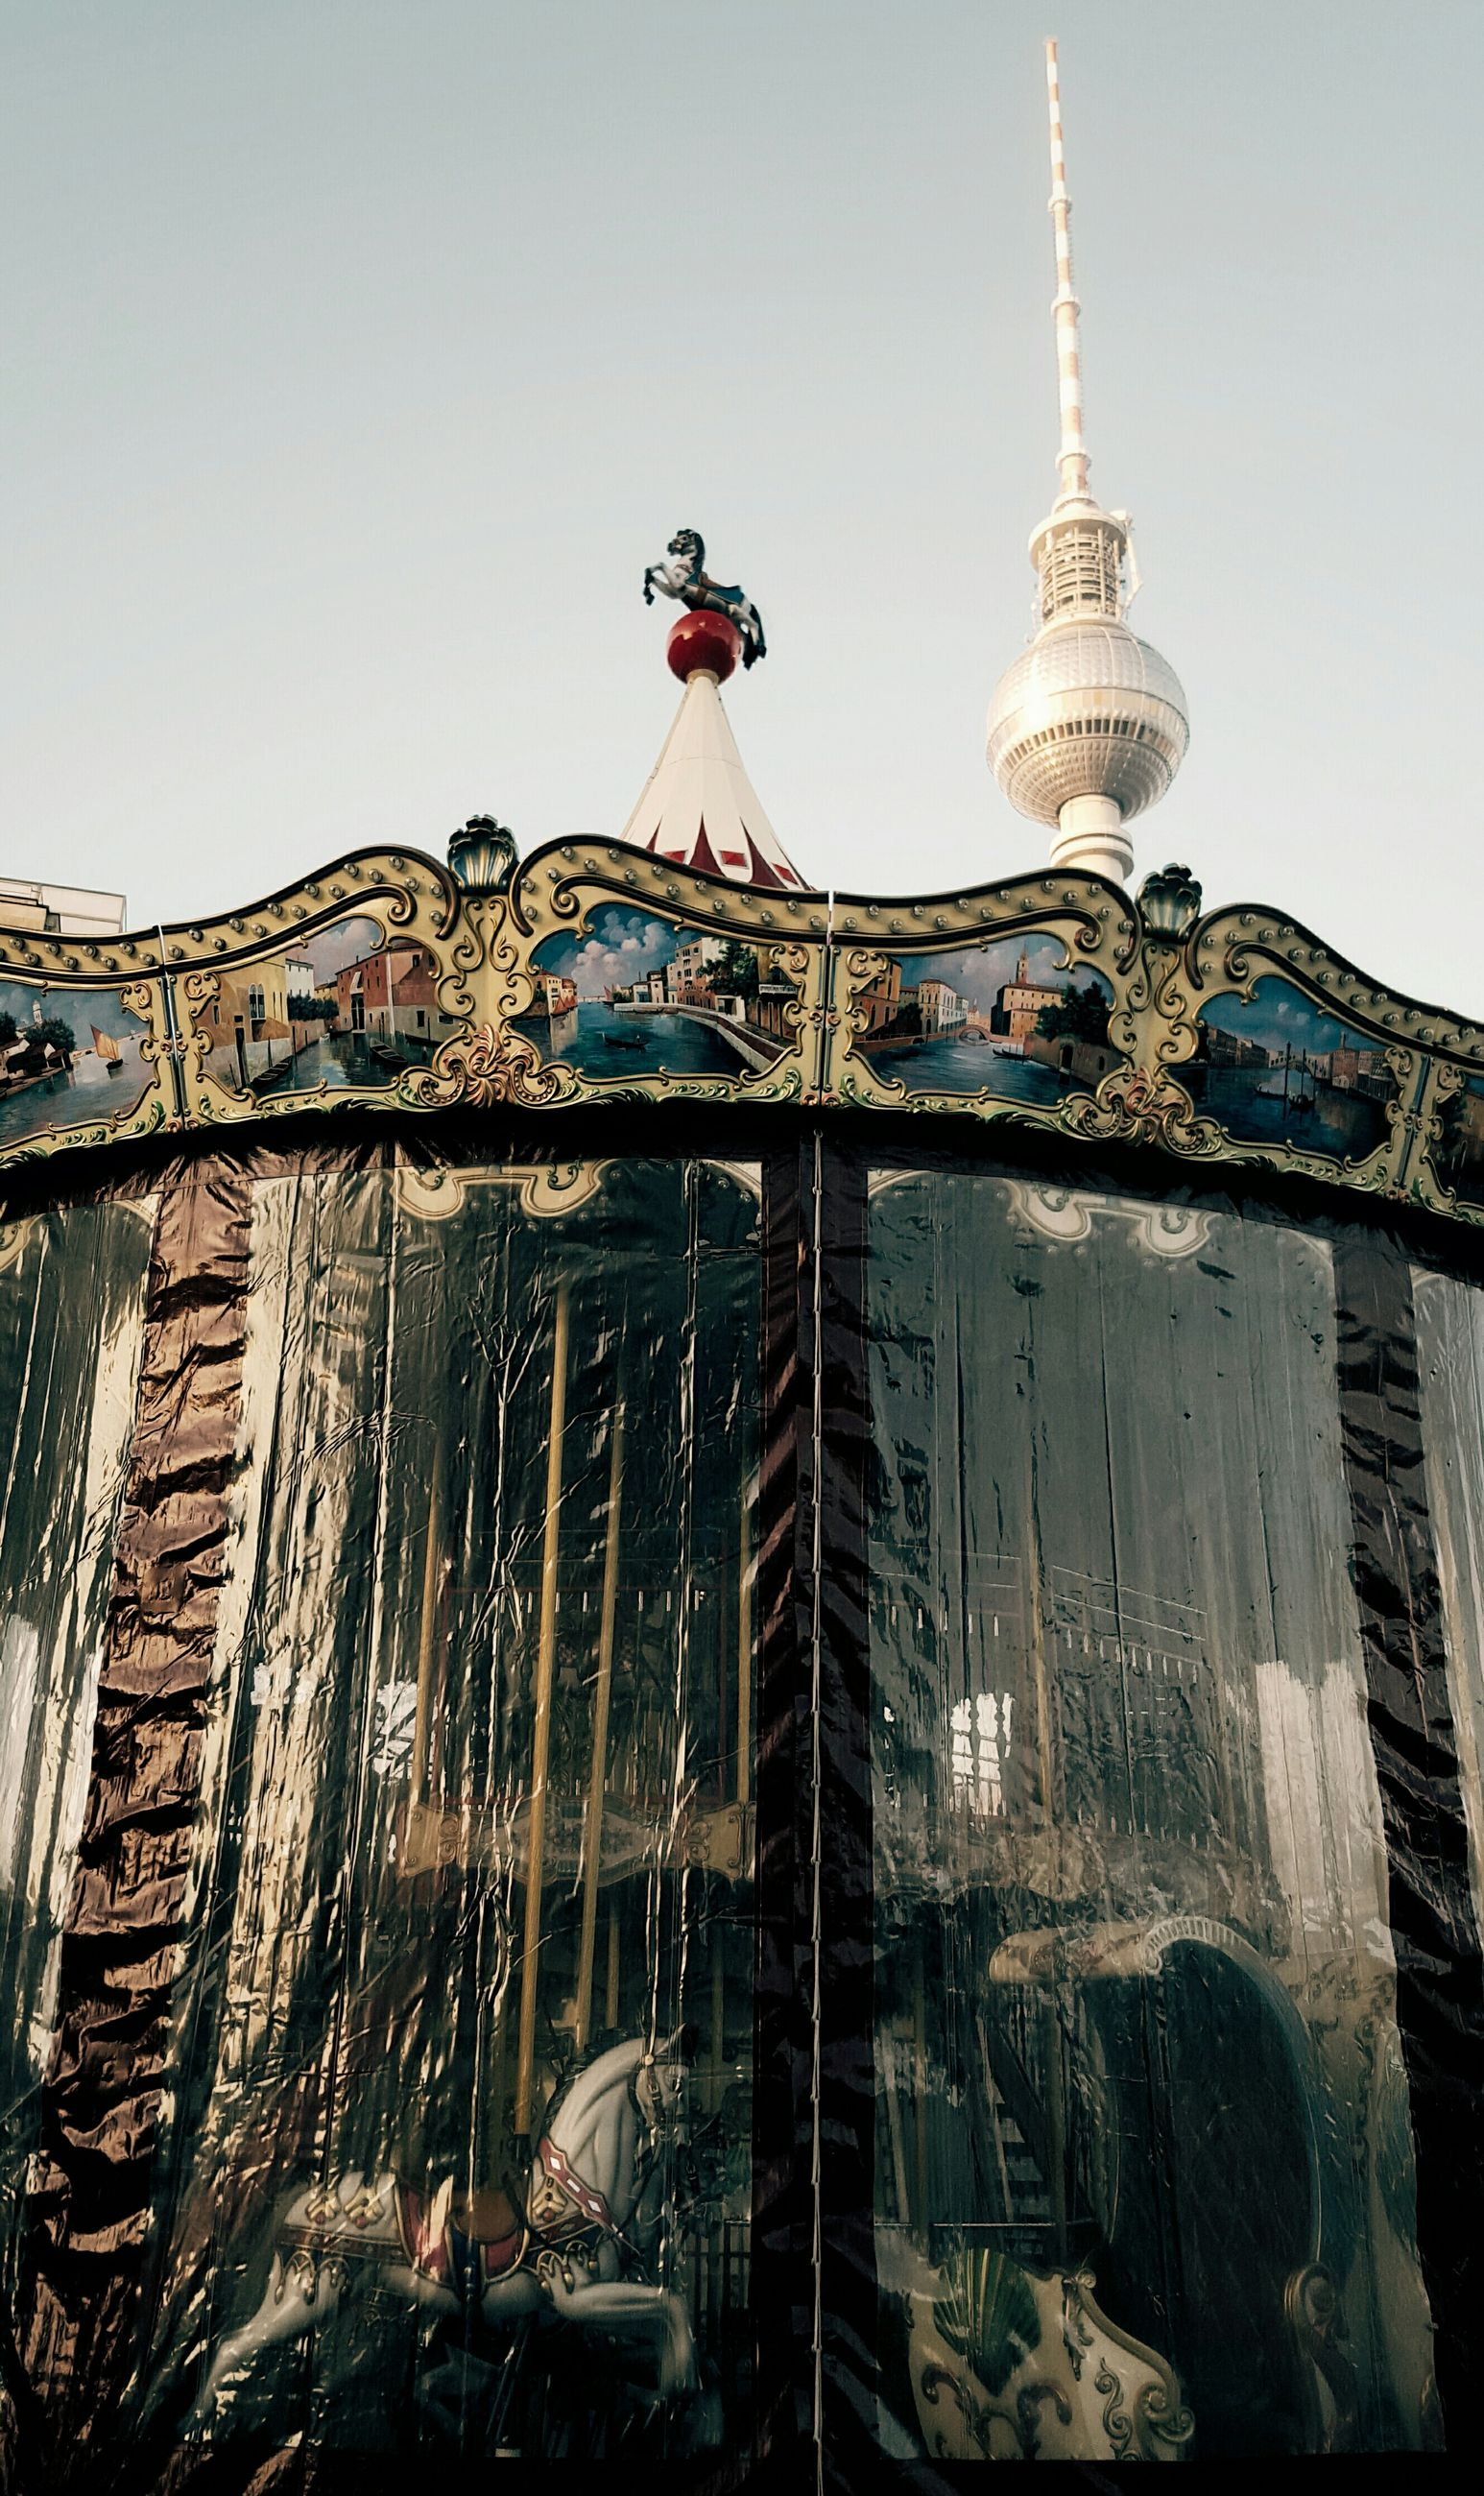 Low angle view of carousel and fernsehturm against sky